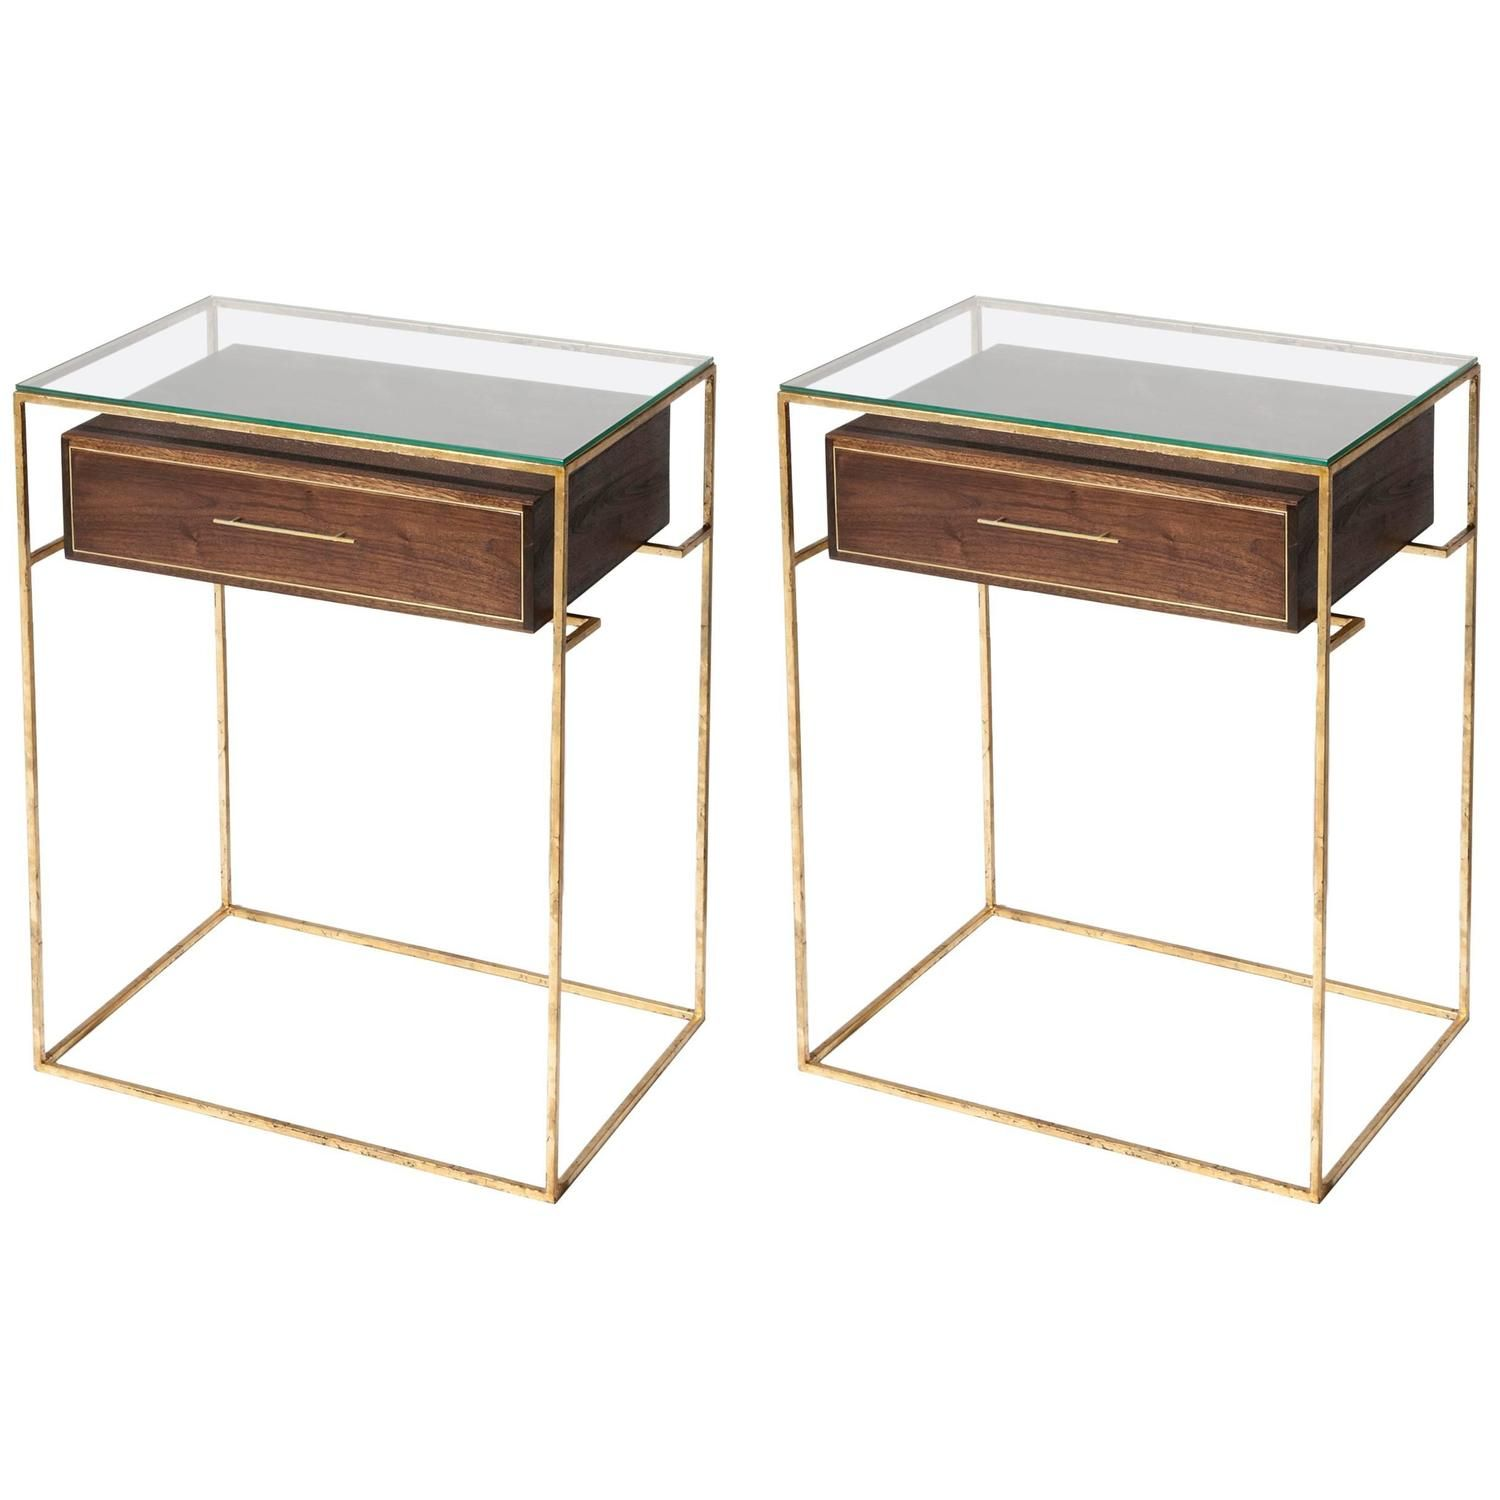 harlow bungalow burke white products table har by decor design side in drawer